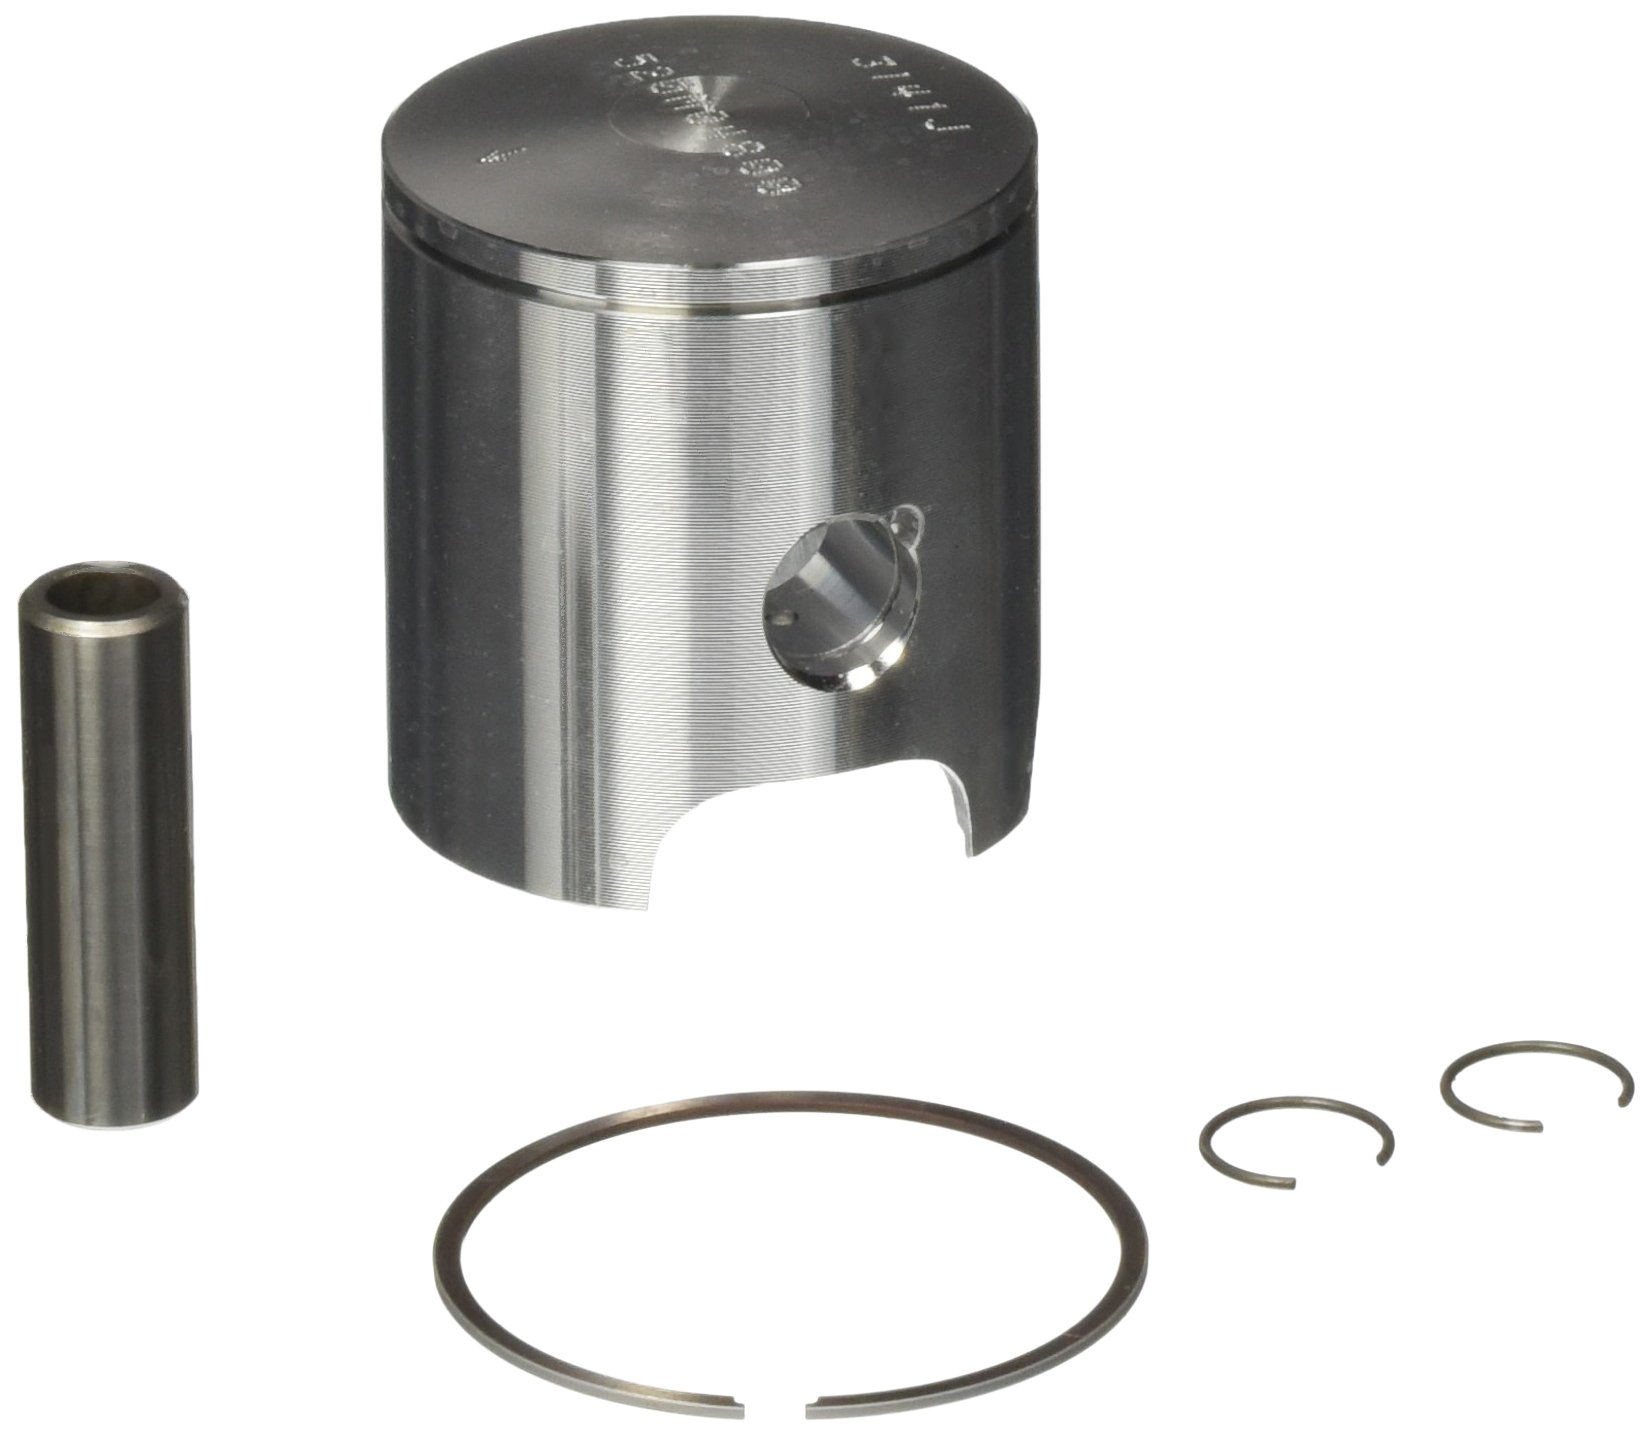 Wiseco 520M04800 48.00 mm 2-Stroke Off-Road Piston by Wiseco (Image #1)